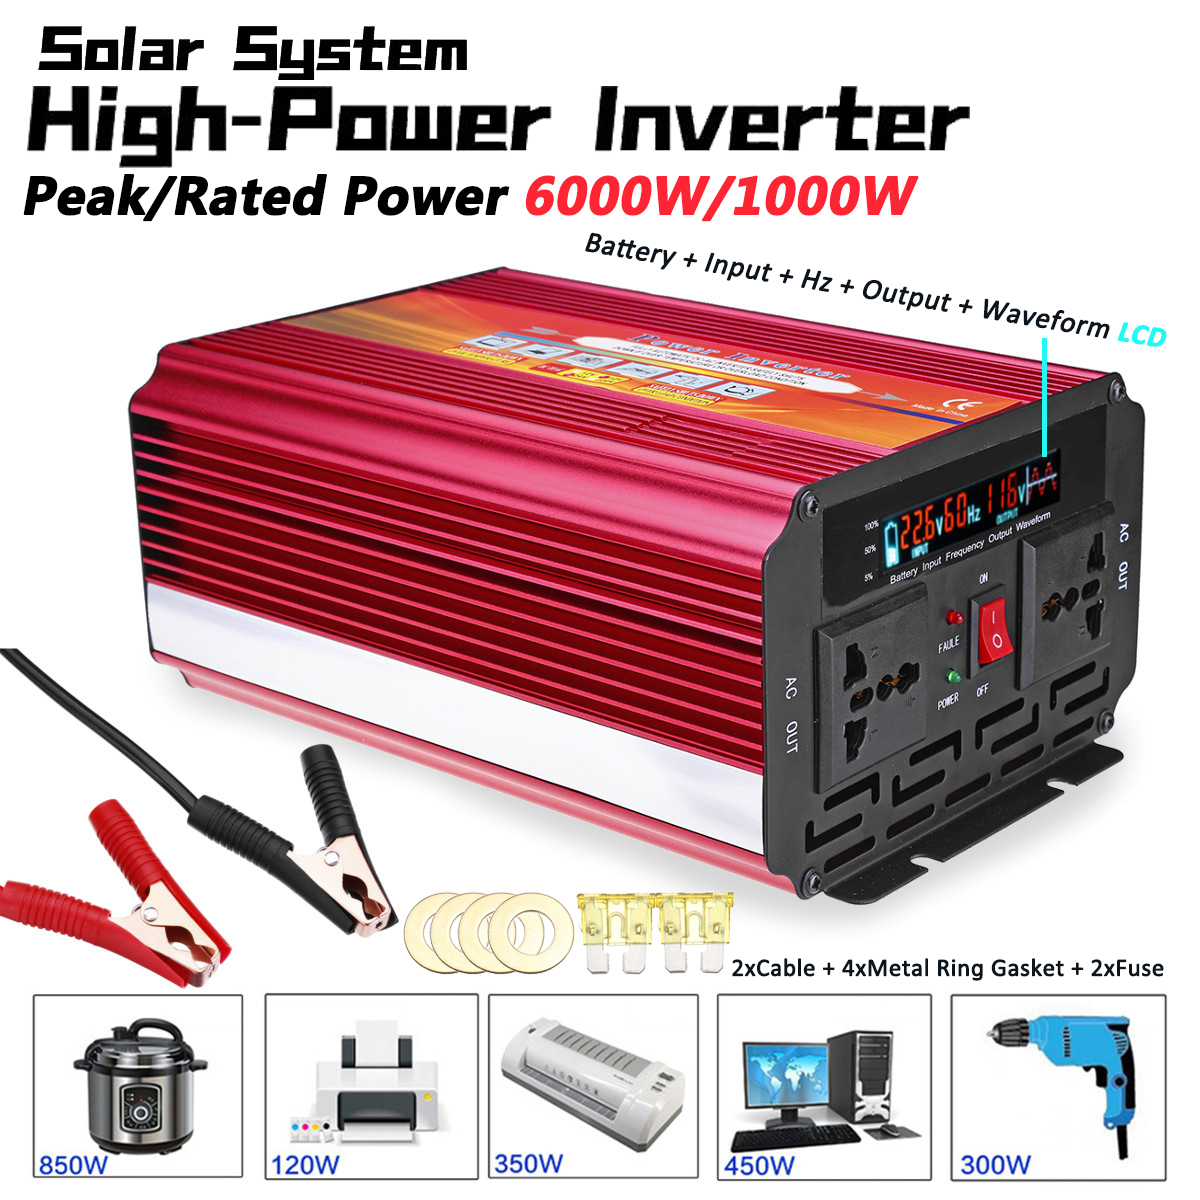 Solar <font><b>Inverter</b></font> 12V 220V <font><b>6000W</b></font> P eak Voltage Transformer Converter DC 12V To AC 220V Car <font><b>Inverter</b></font> 12V/<font><b>24V</b></font> To 110V/220V LCD image